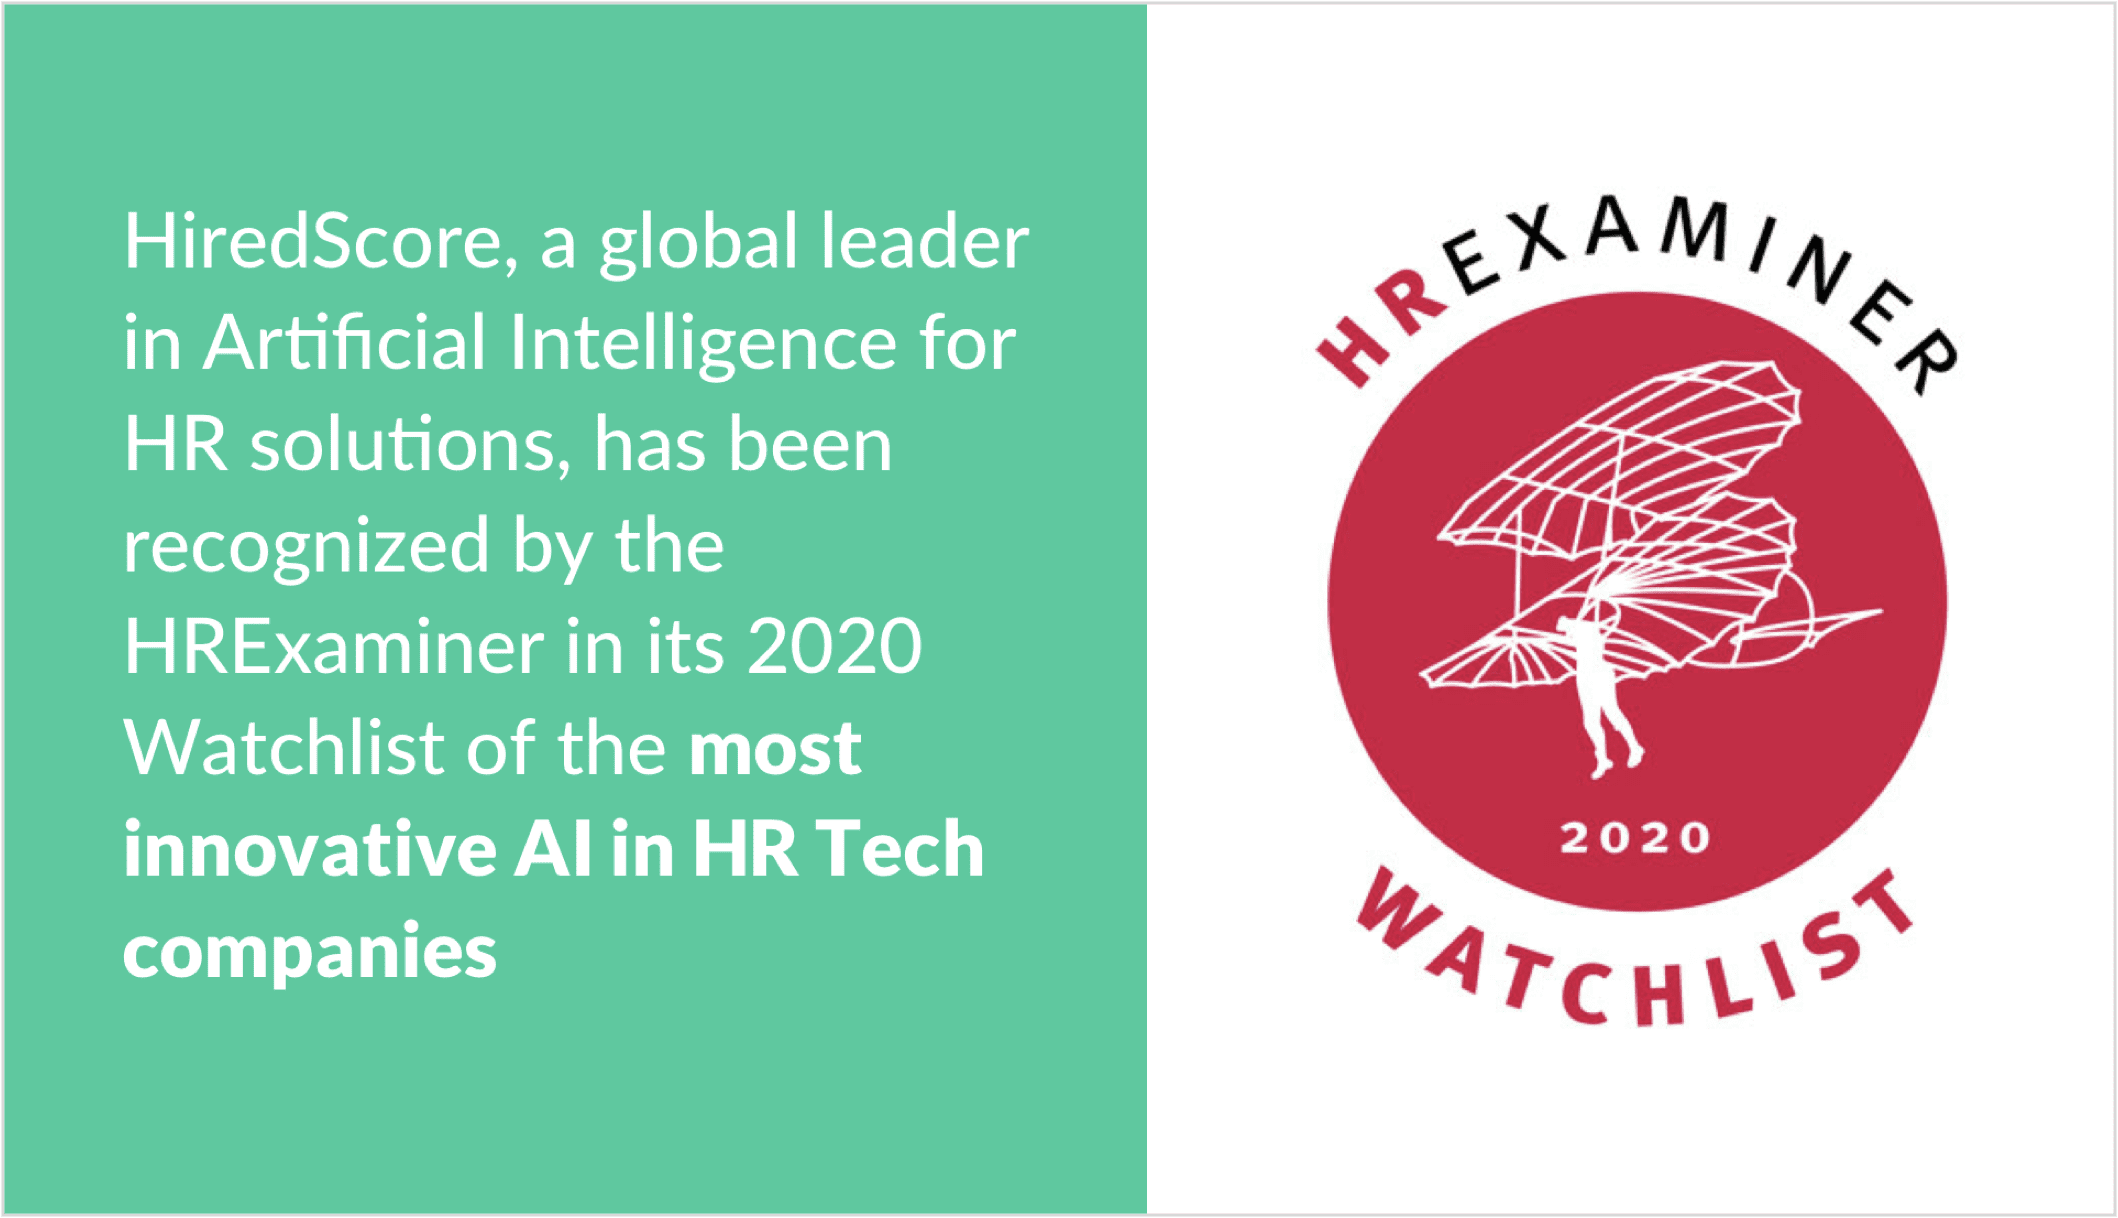 HiredScore Recognized by HRExaminer on 2020 HR Watchlist for Most Innovative AI